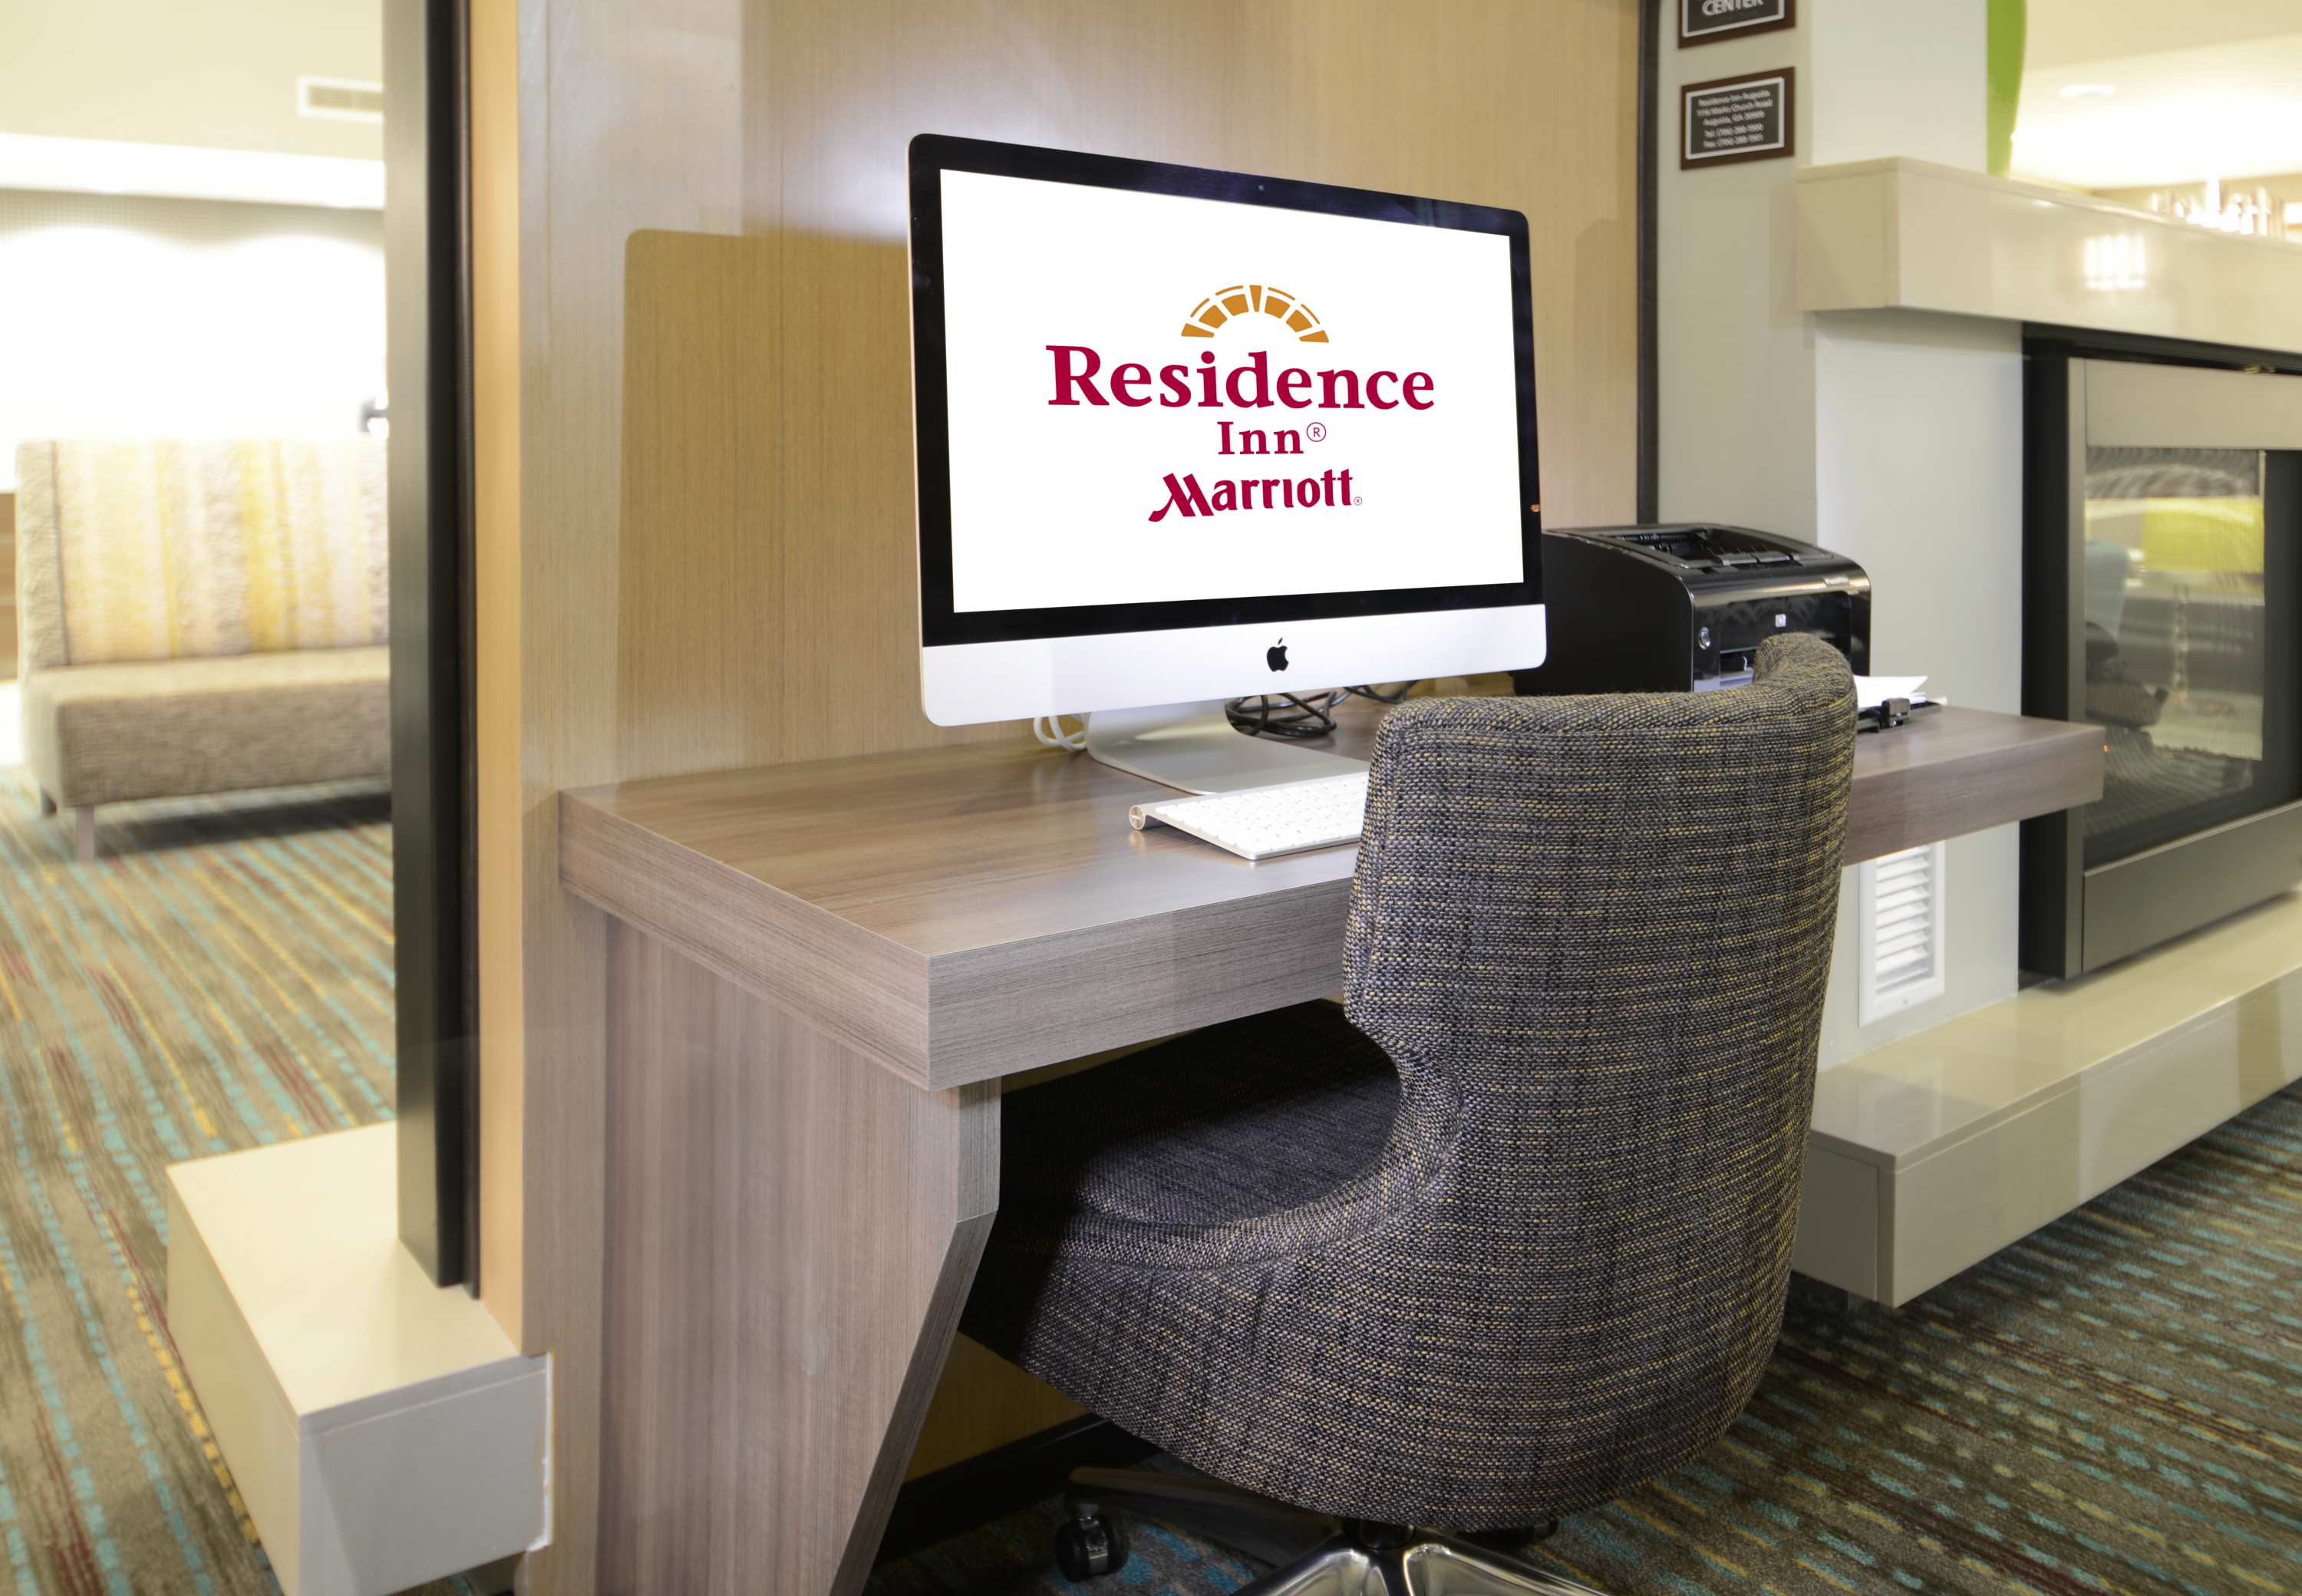 Residence Inn by Marriott Augusta image 3